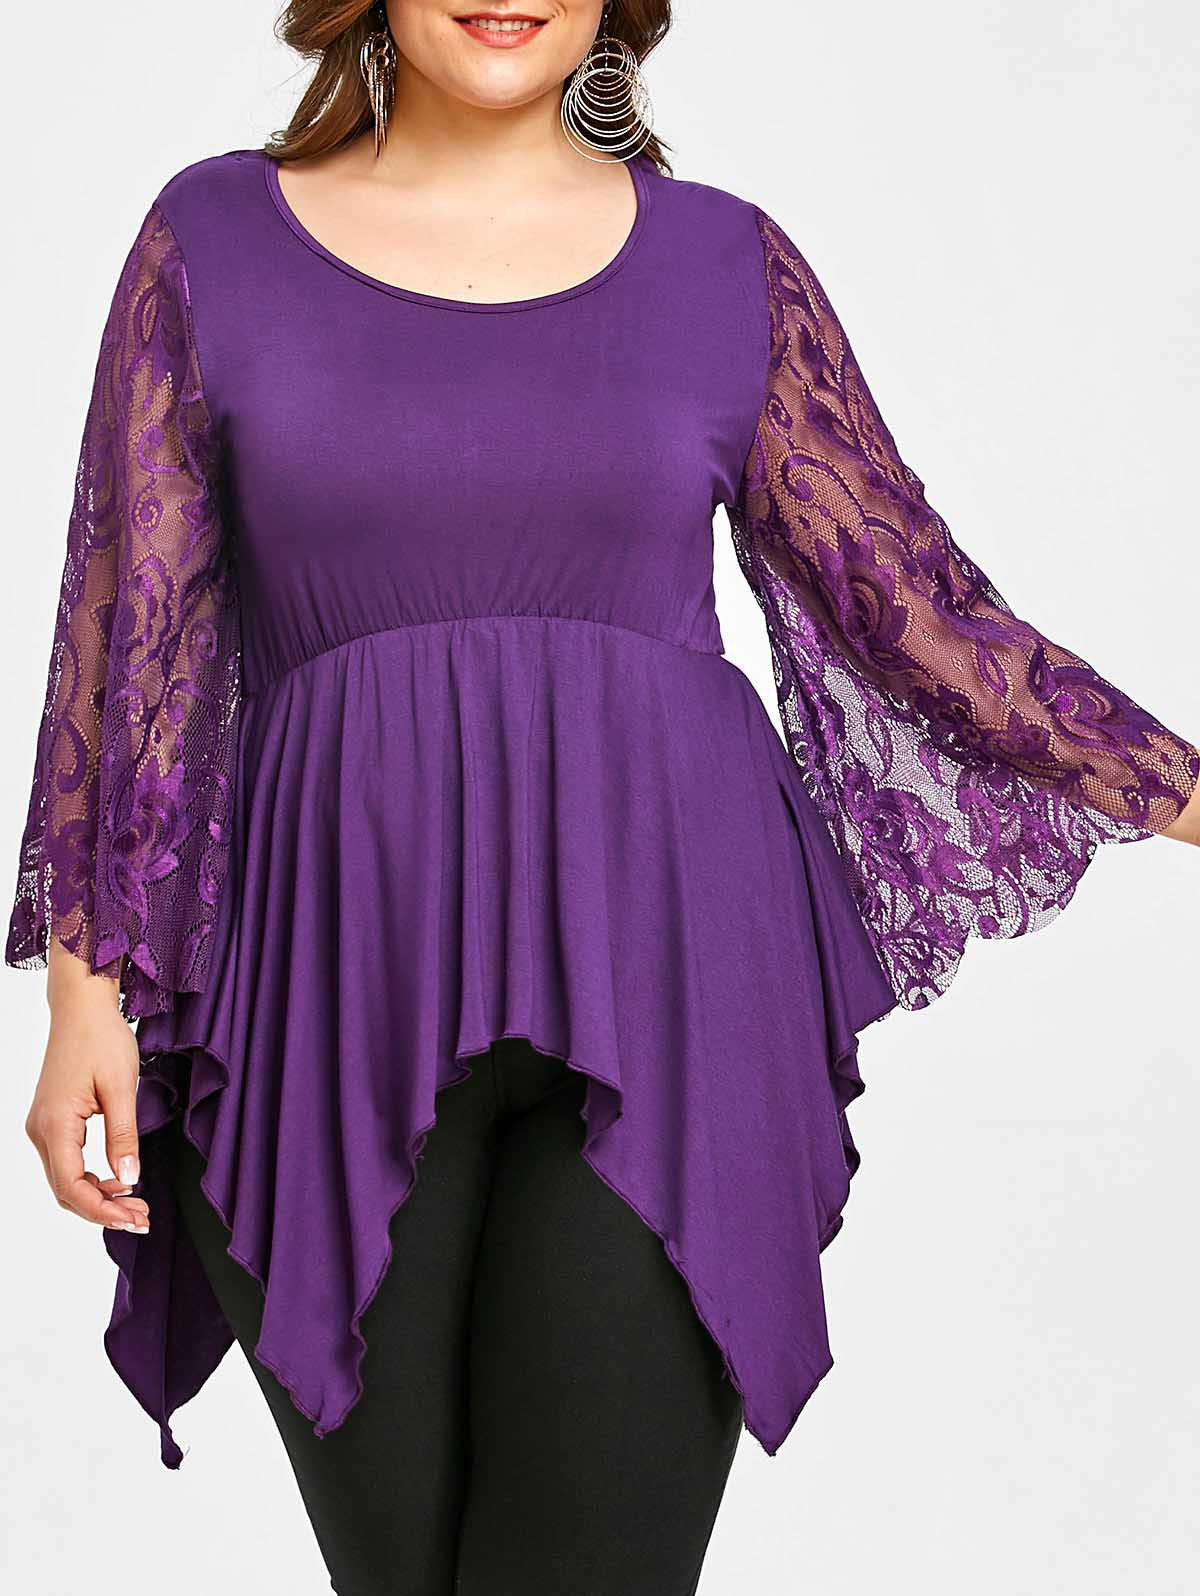 Lace Sleeve Plus Size Asymmetrical Handkerchief T-shirt - PURPLE 5XL